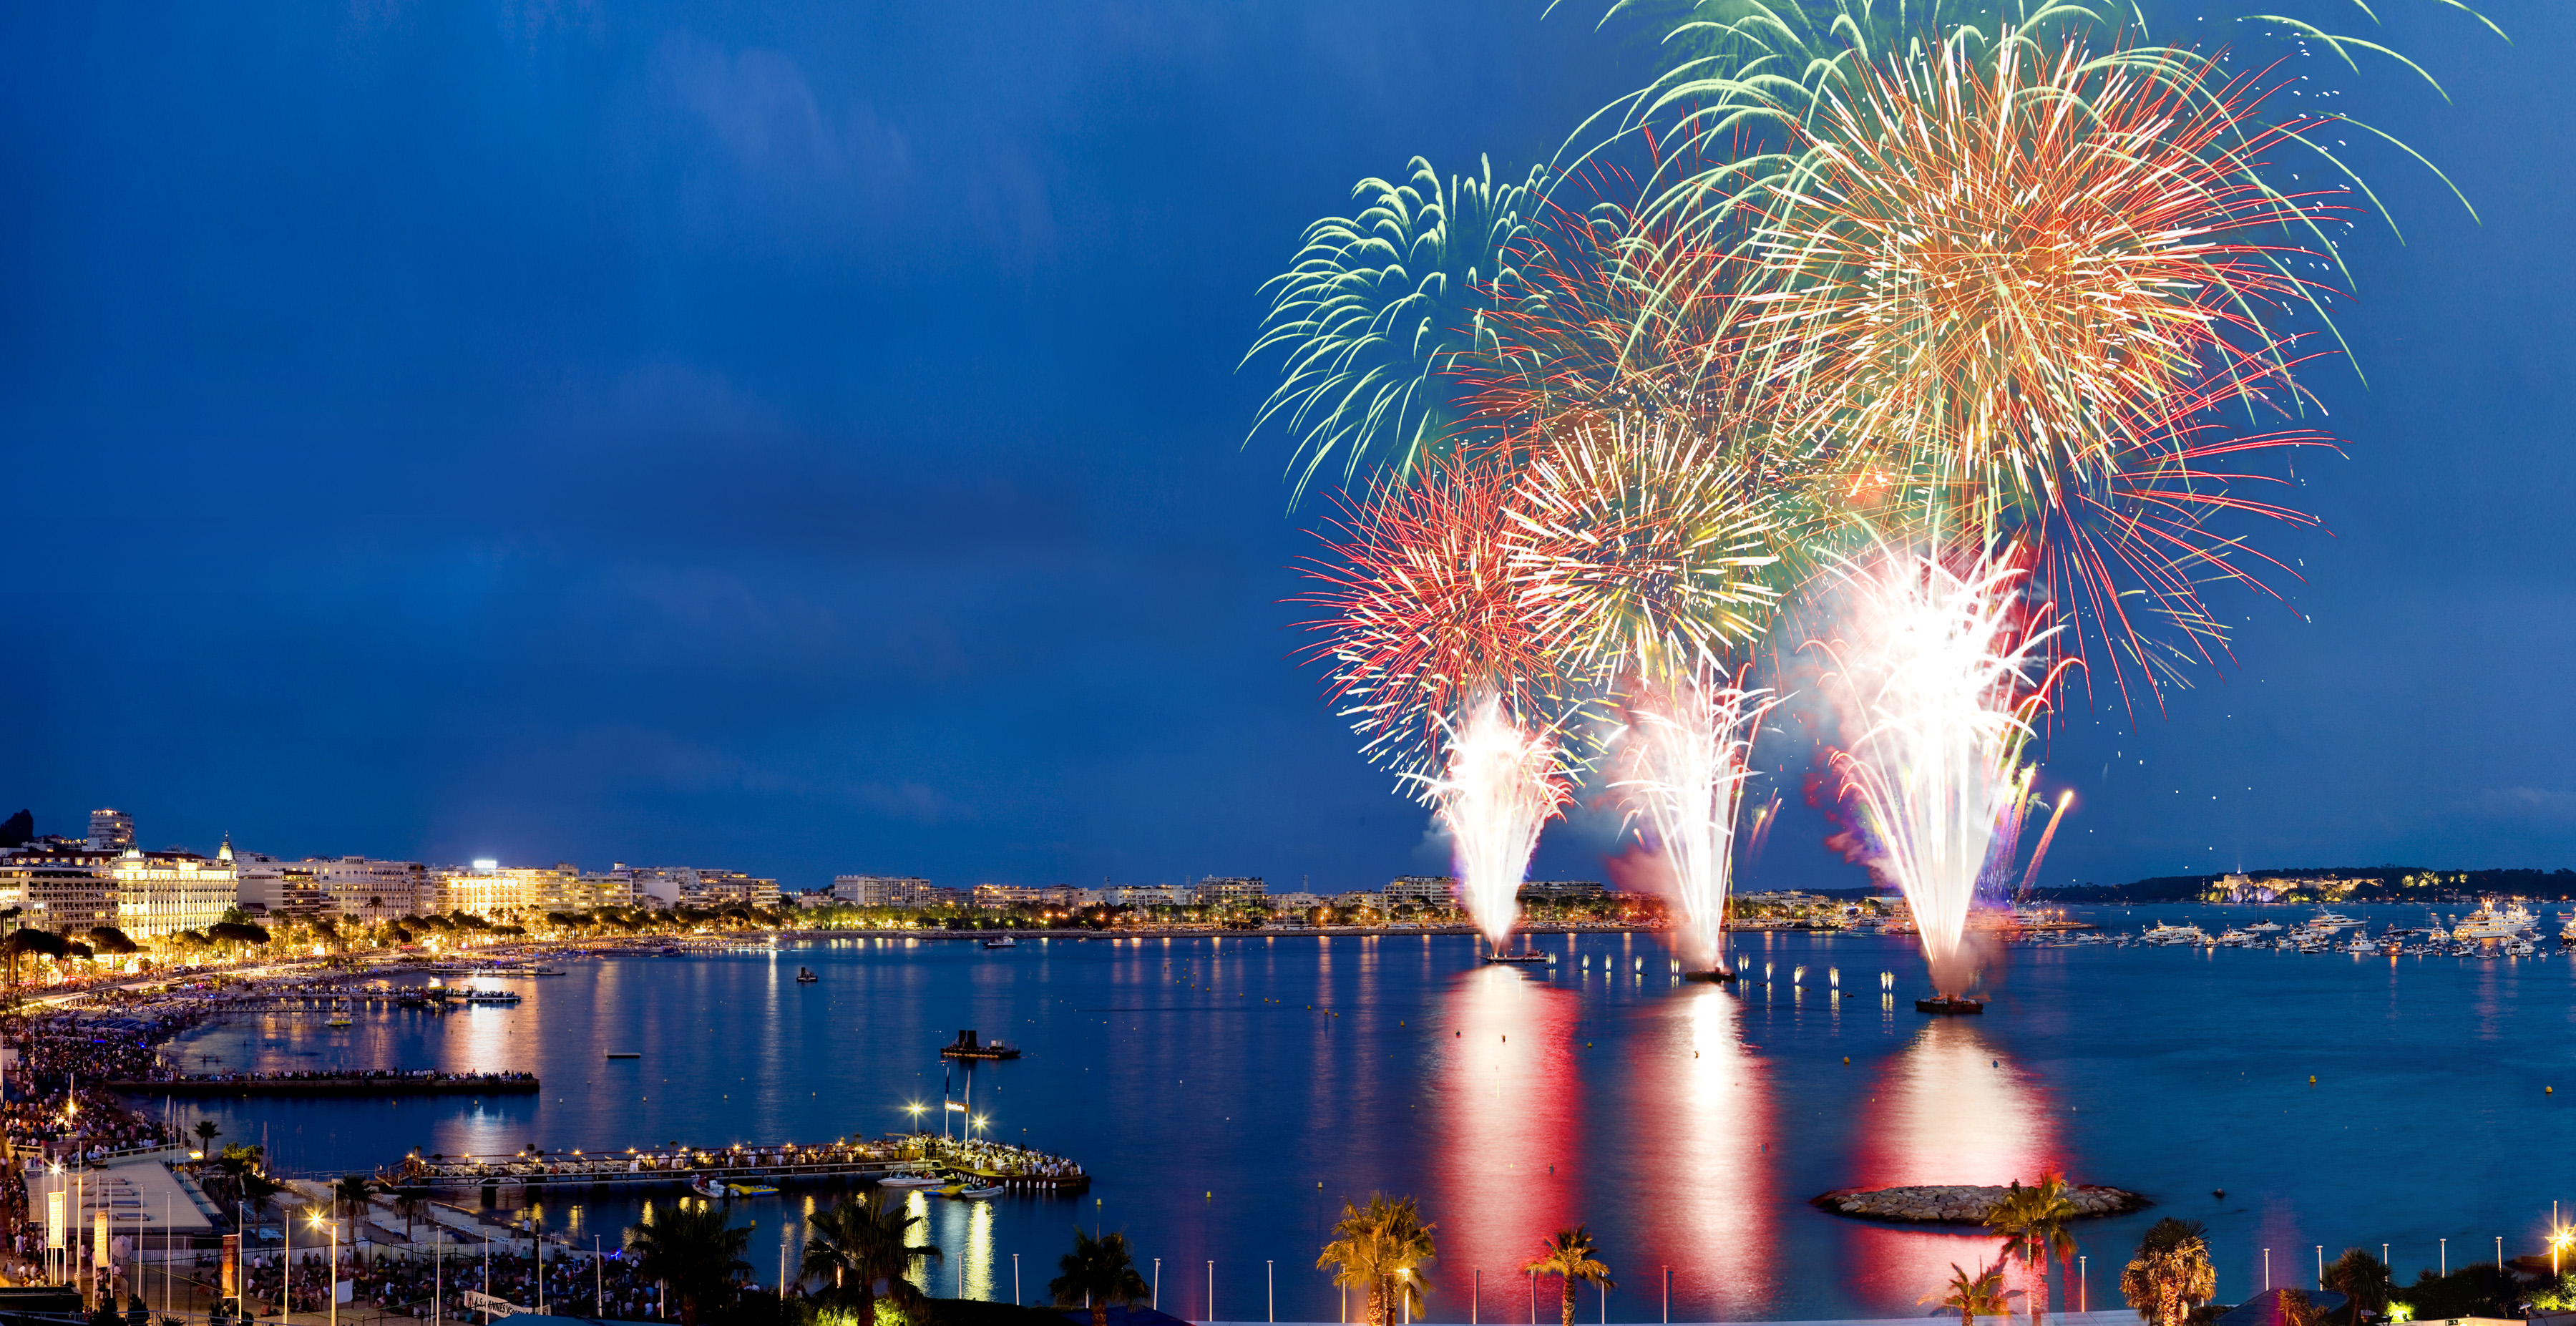 where to watch fireworks in bay area